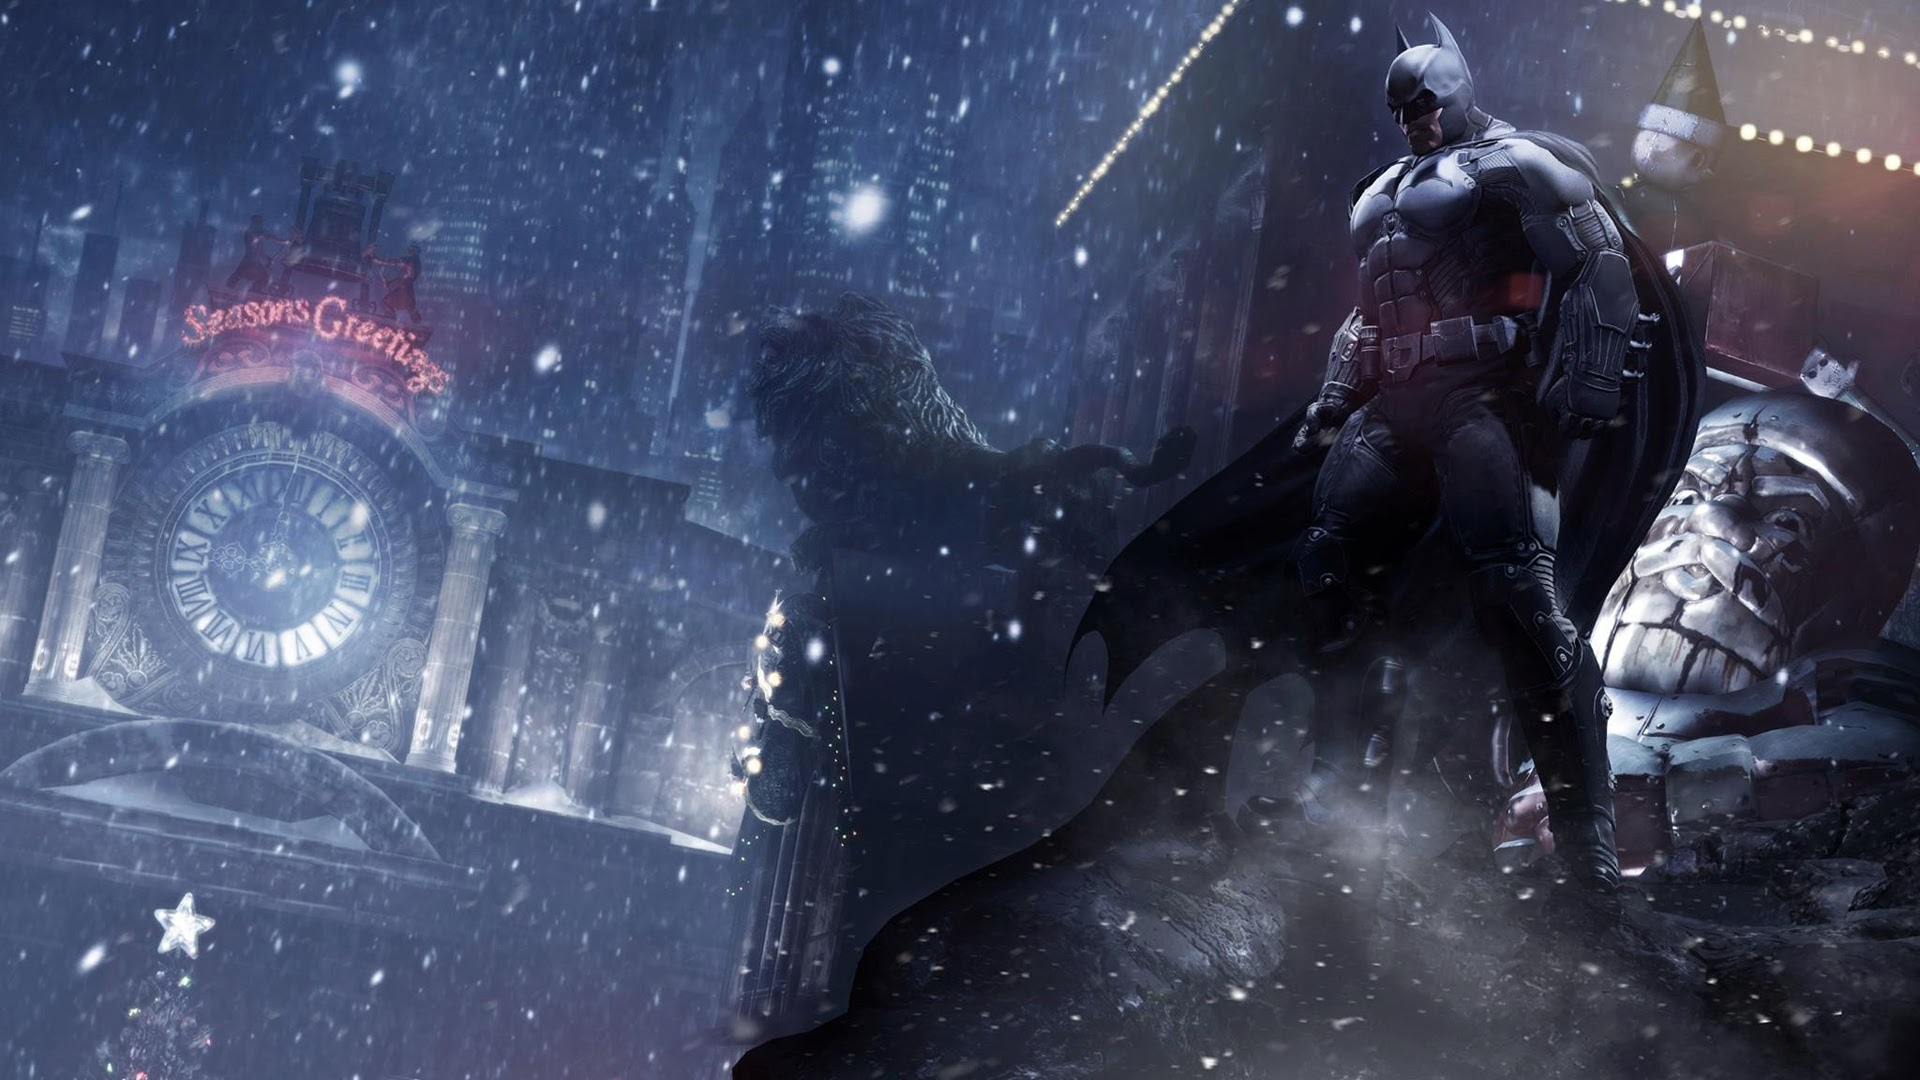 batman arkham origins video game wallpapers - Hd game wallpaper on Pinterest Assassins Creed Batman